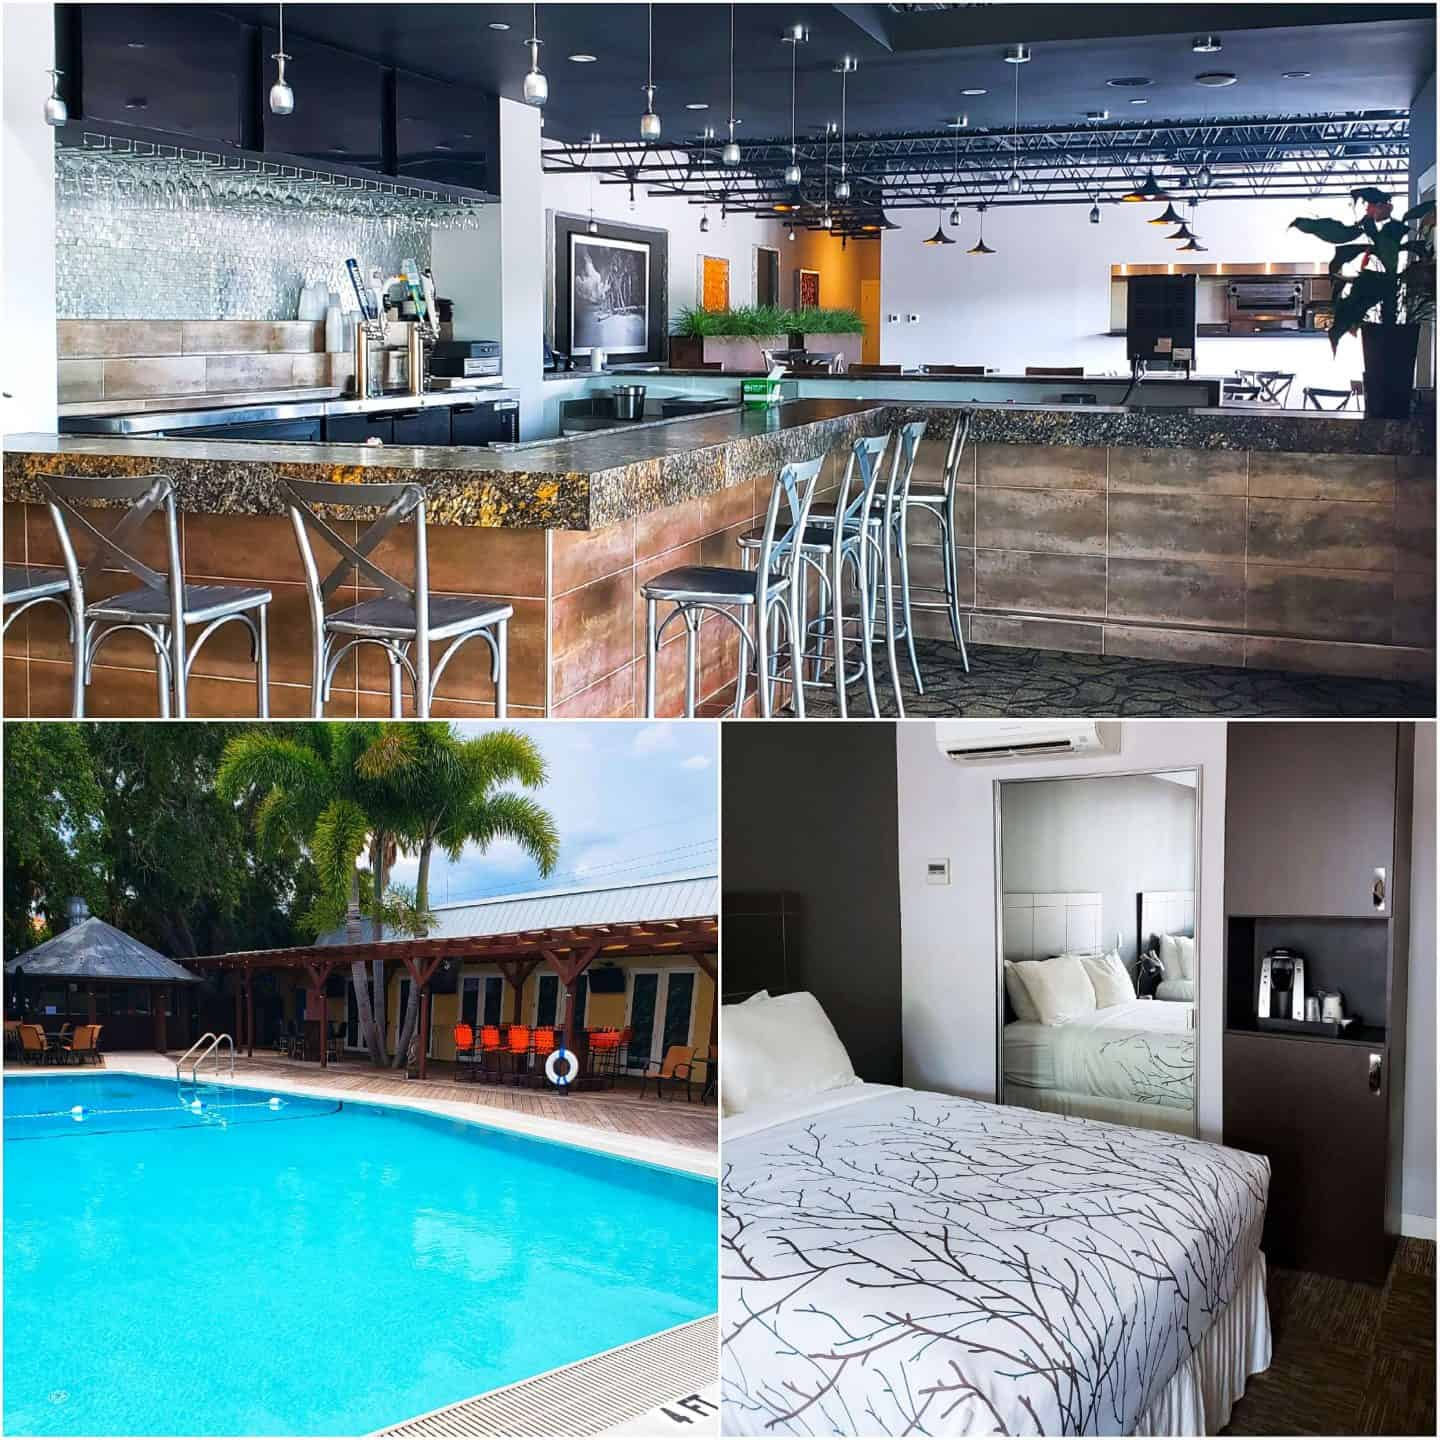 Bentley's Boutique Hotel - Osprey, FL